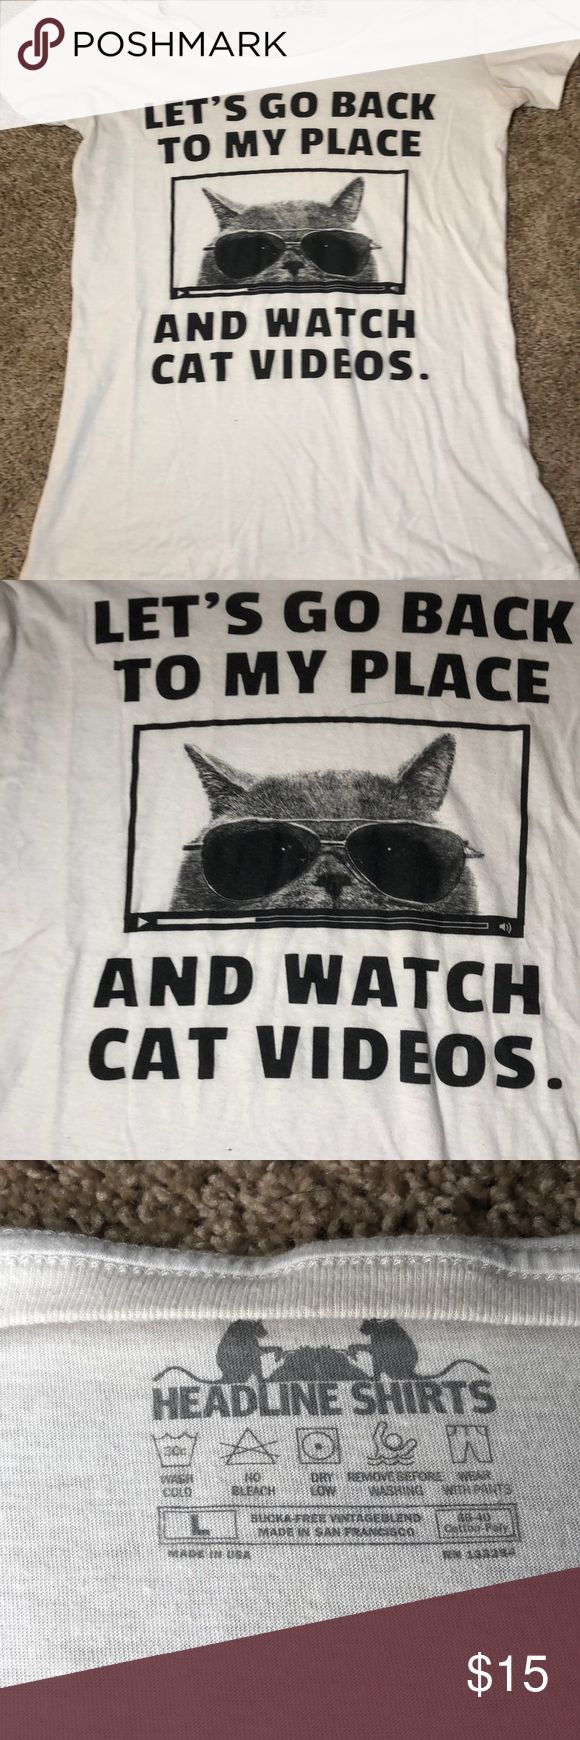 "Chive shirt I bought this from the Chive website. It says ""let's go back to my place and watch cat videos."" Size large. chive Tops Tees - Short Sleeve"